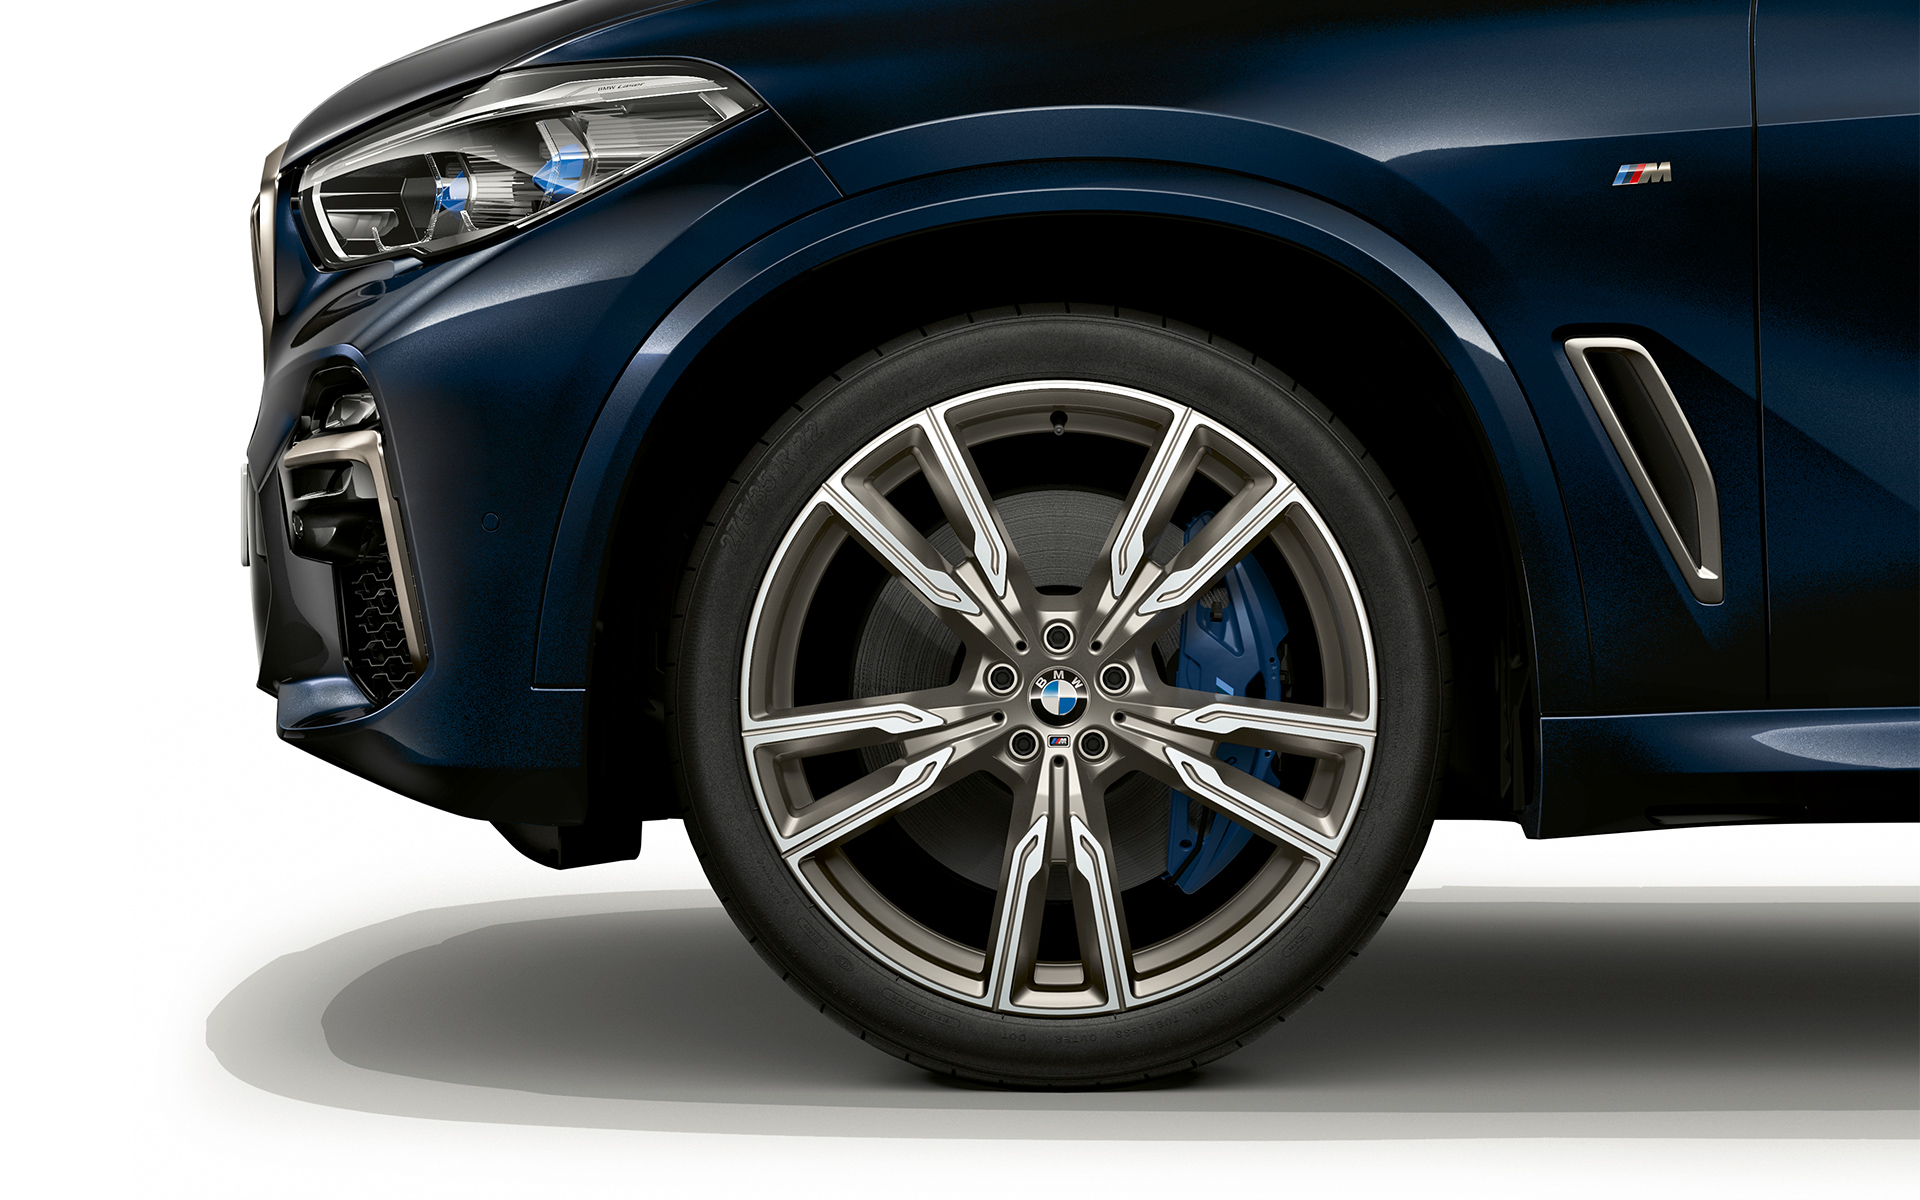 Light alloy wheels of the BMW X5 M50d